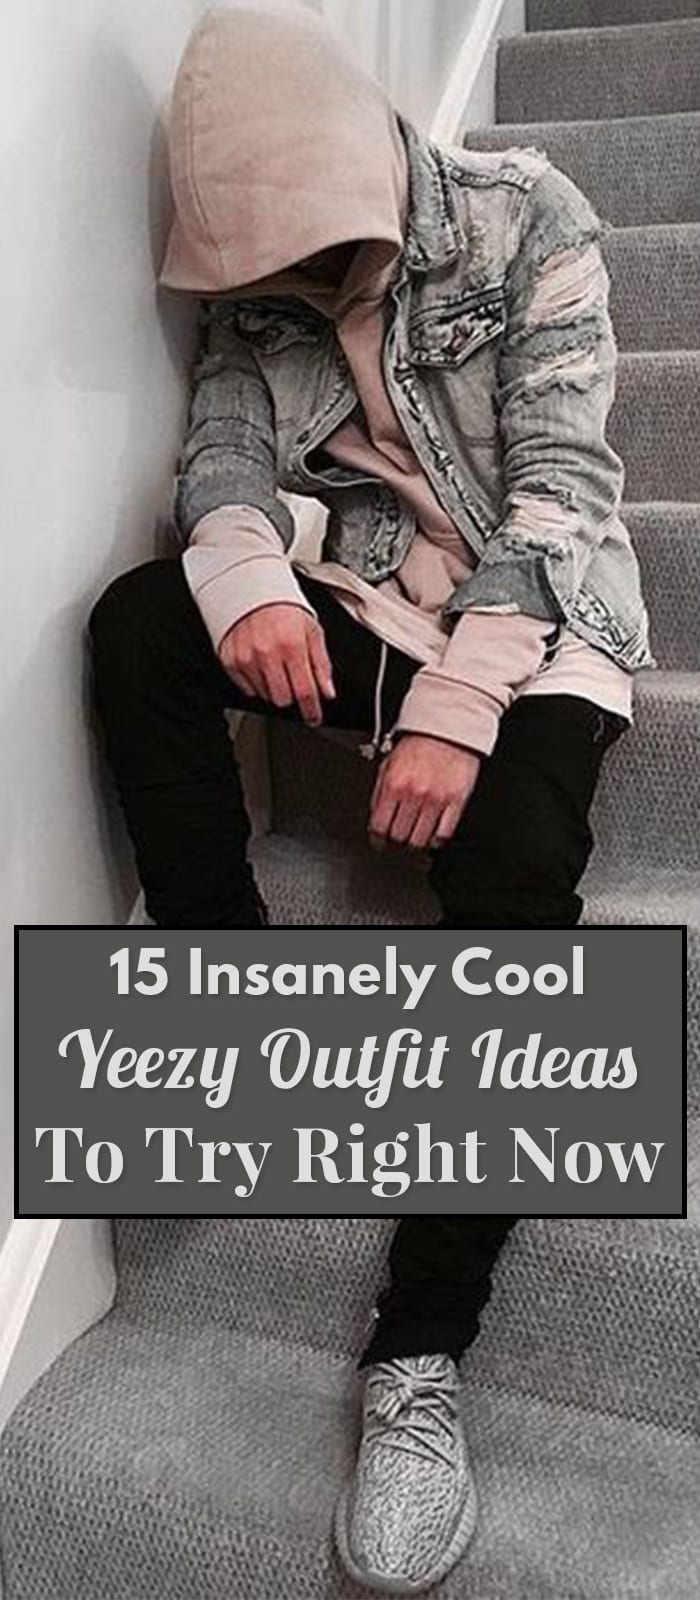 15 Insanely Cool Yeezy Outfit Ideas To Try Right Now.